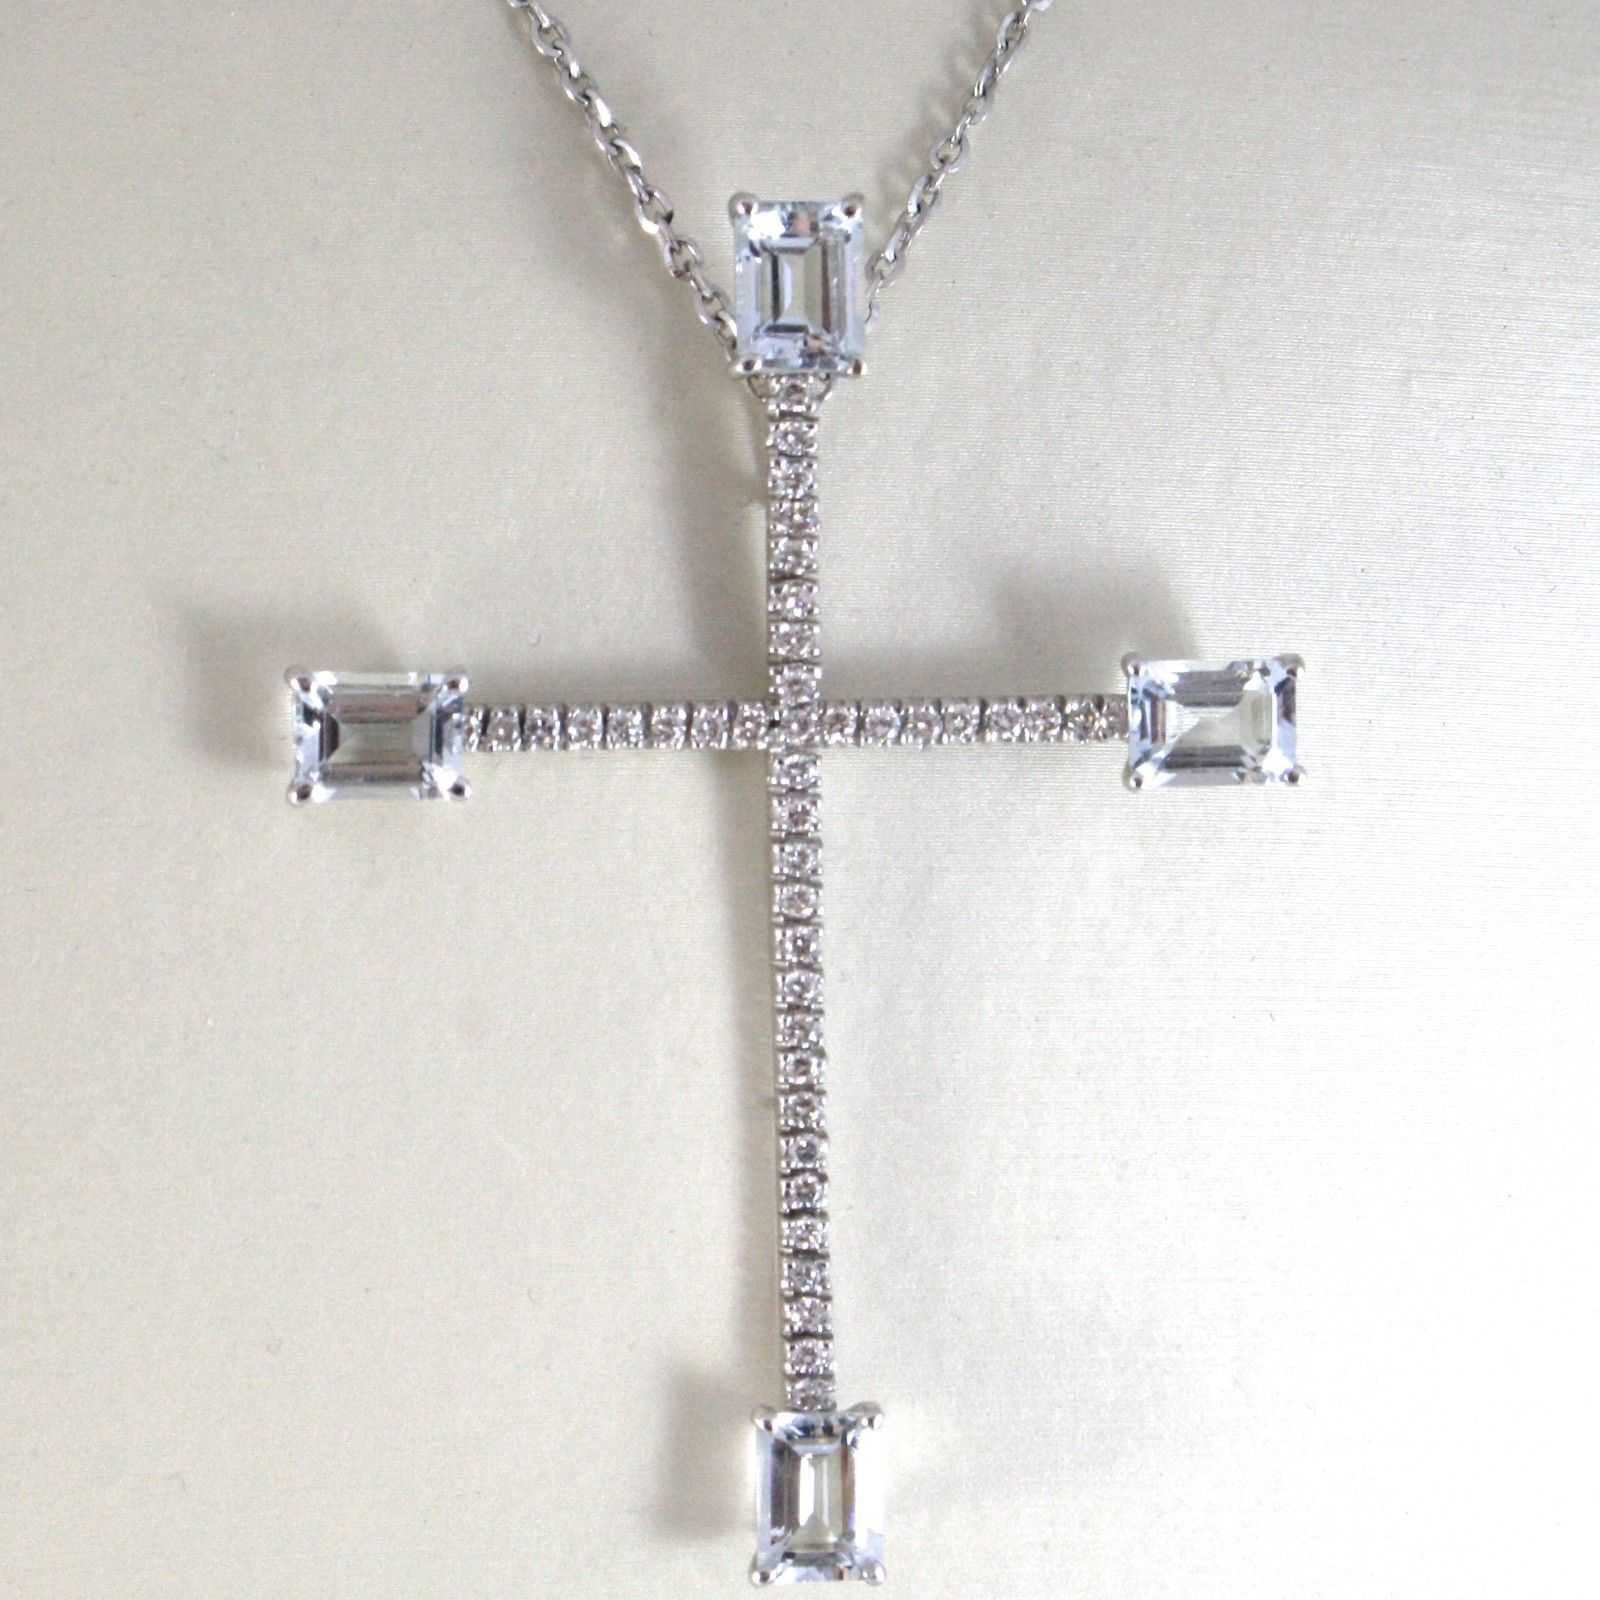 NECKLACE WHITE GOLD 750 18K,PENDANT CROSS AQUAMARINES AND DIAMONDS,CHAIN ROLO'